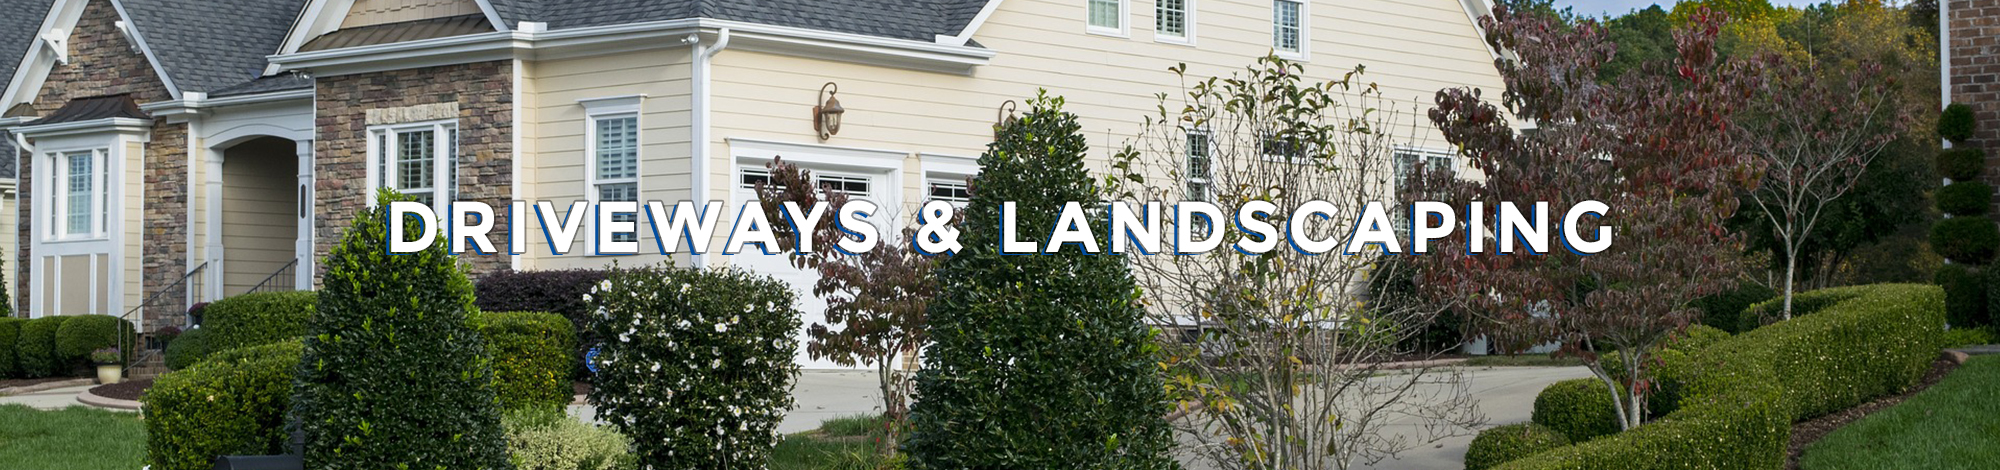 Driveways & Landscaping